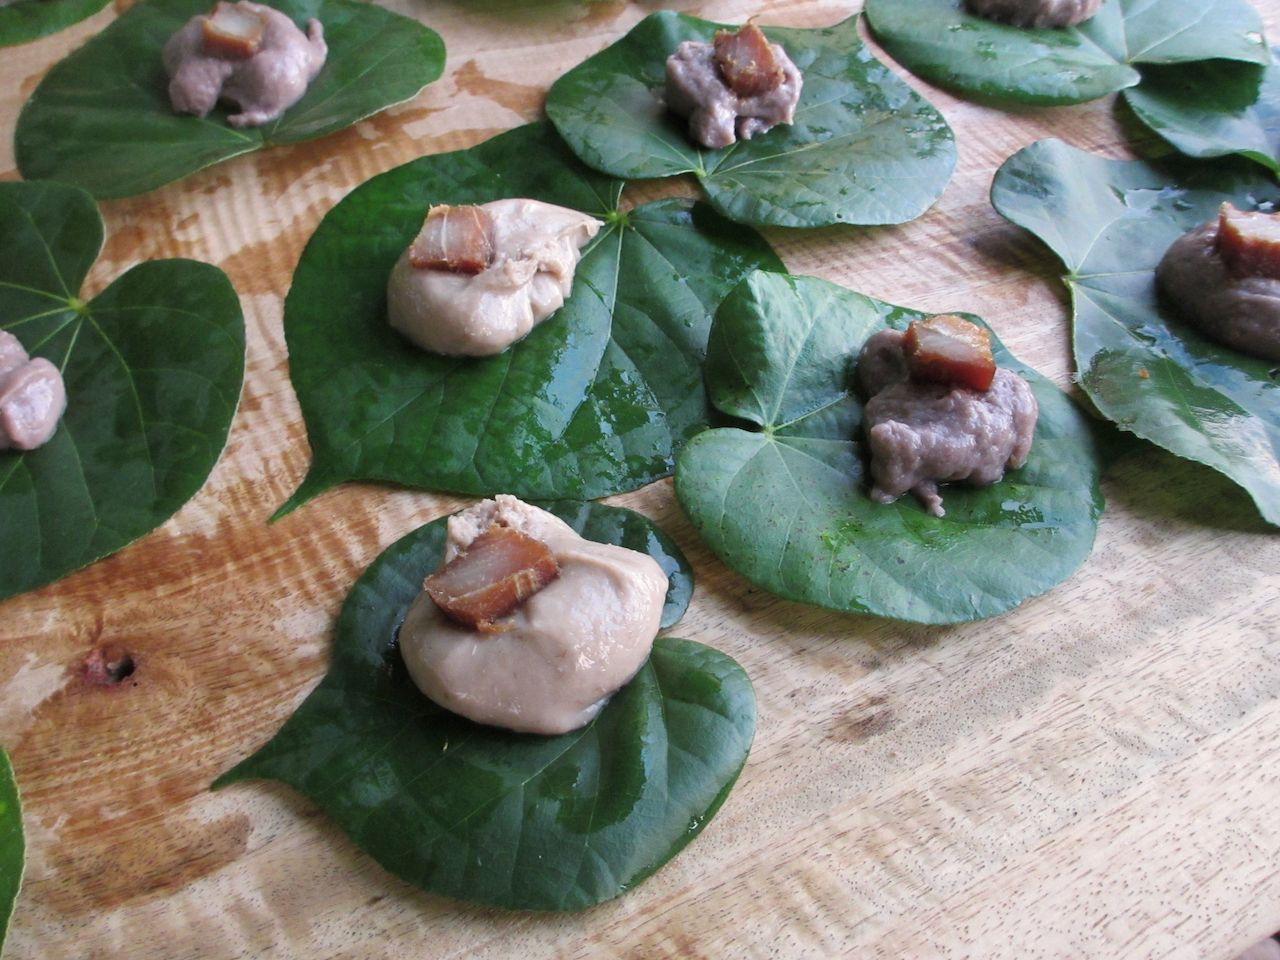 poi and taro leaves